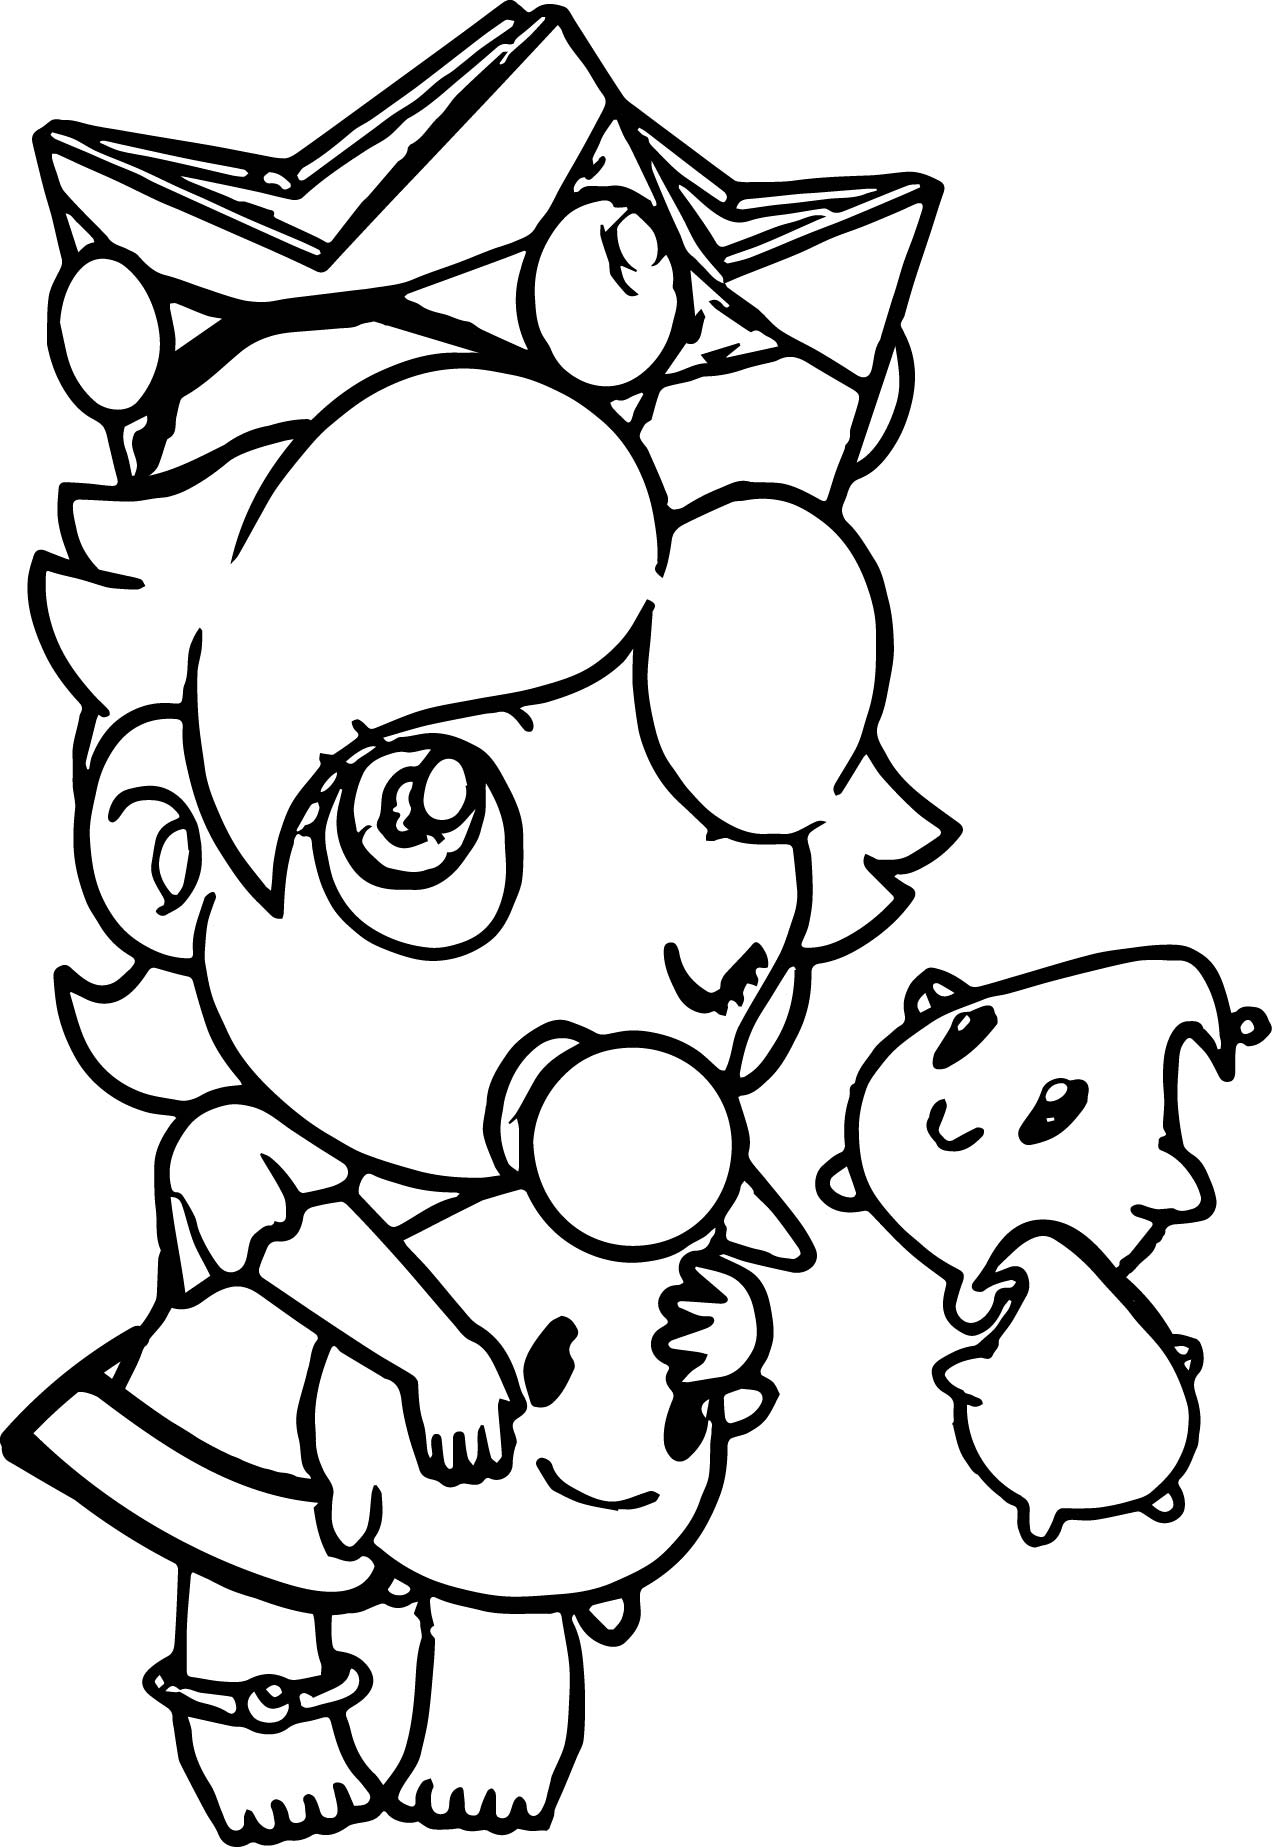 1272x1847 Baby Daisy Coloring Pages Gallery Coloring For Kids